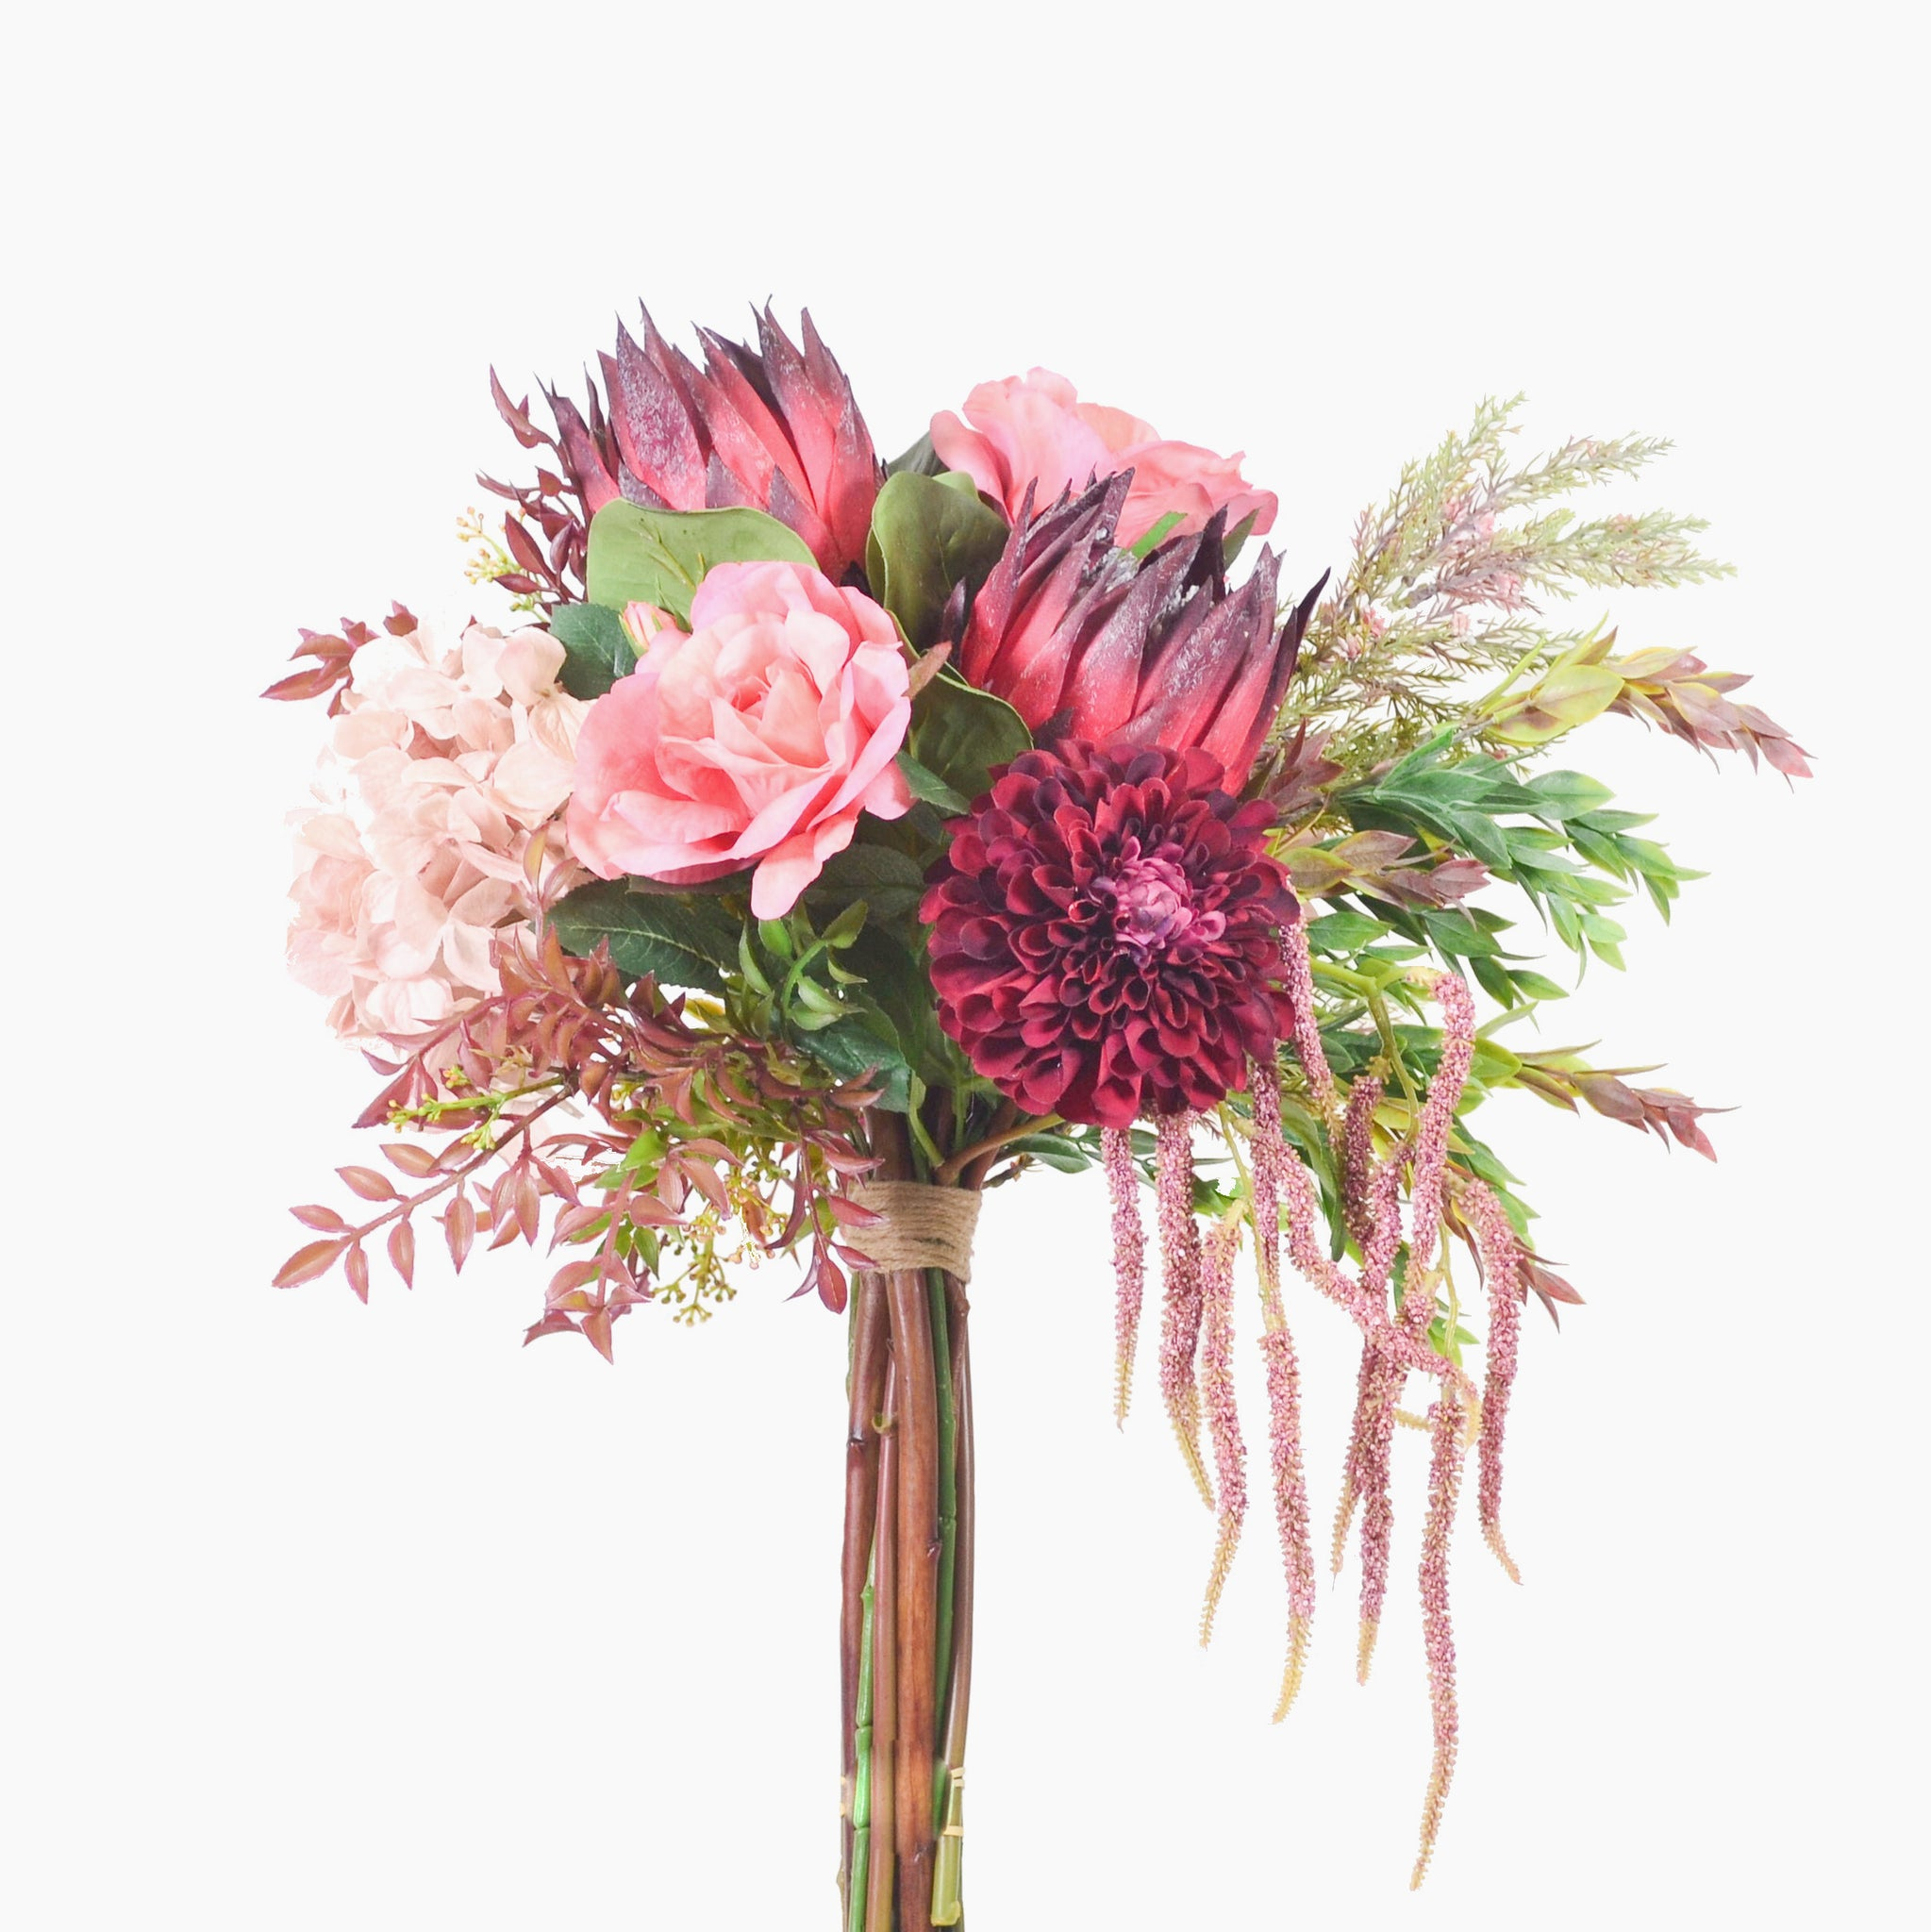 Burgundy king protea, dahlia, hydrangea and rose with mixed foliage